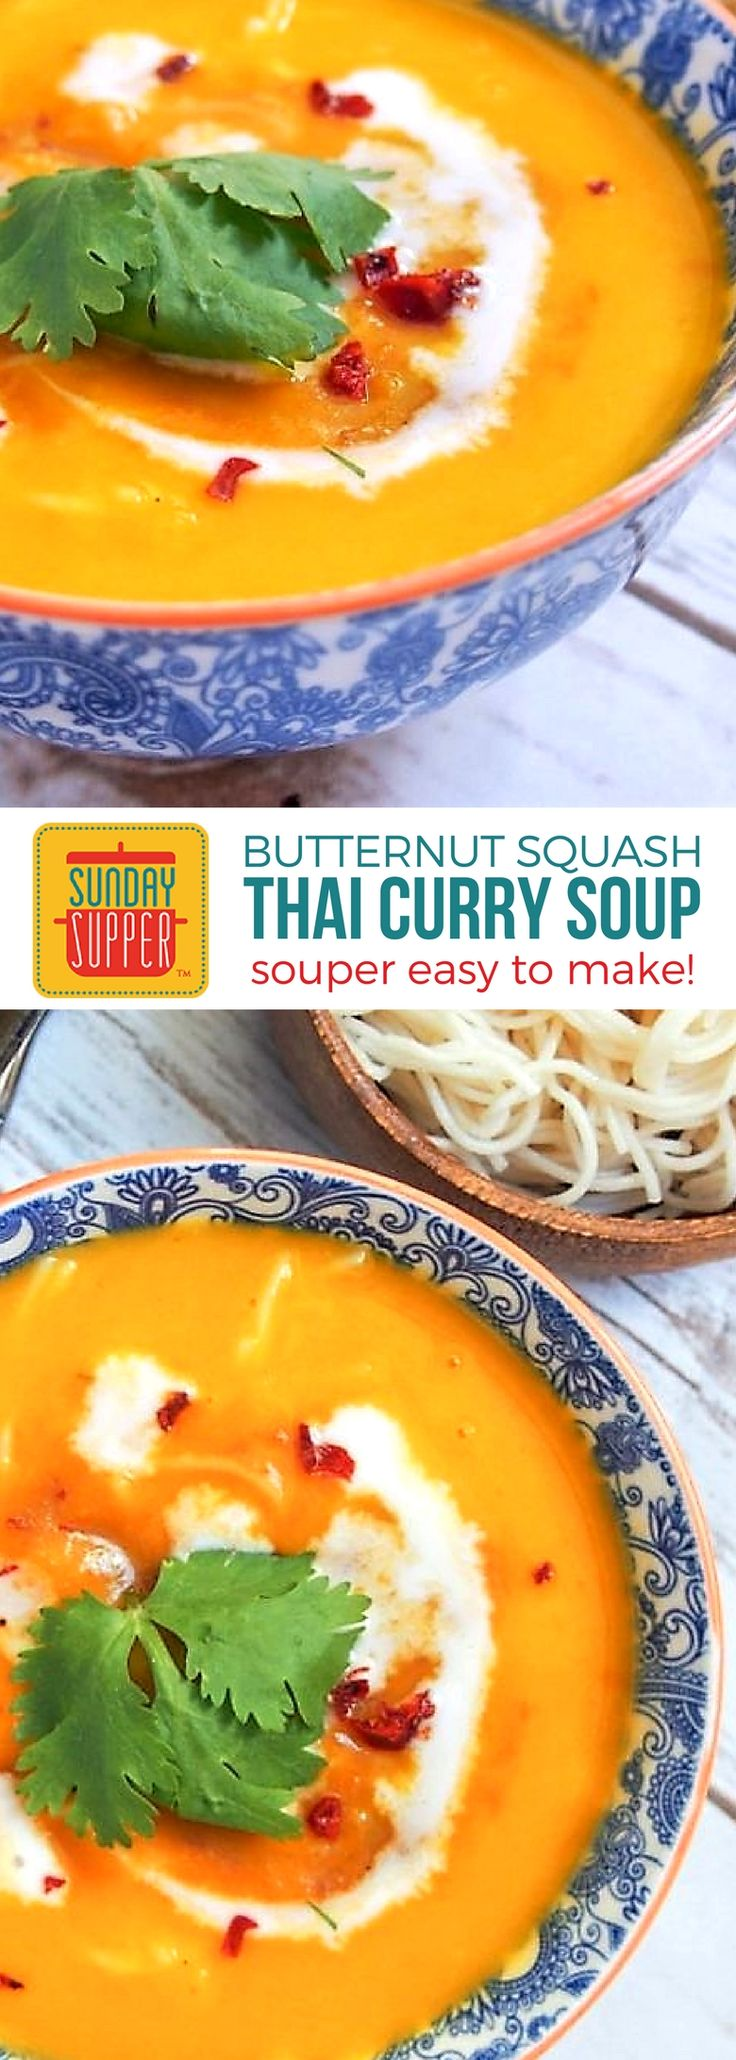 Thai Squash Soup is comfort food to warm your soul! Silky smooth butternut squash kicked up a notch with Thai curry flavor. A great big hug in a bowl! #SundaySupper #ComfortFoodRecipe #ThaiSquashSoup